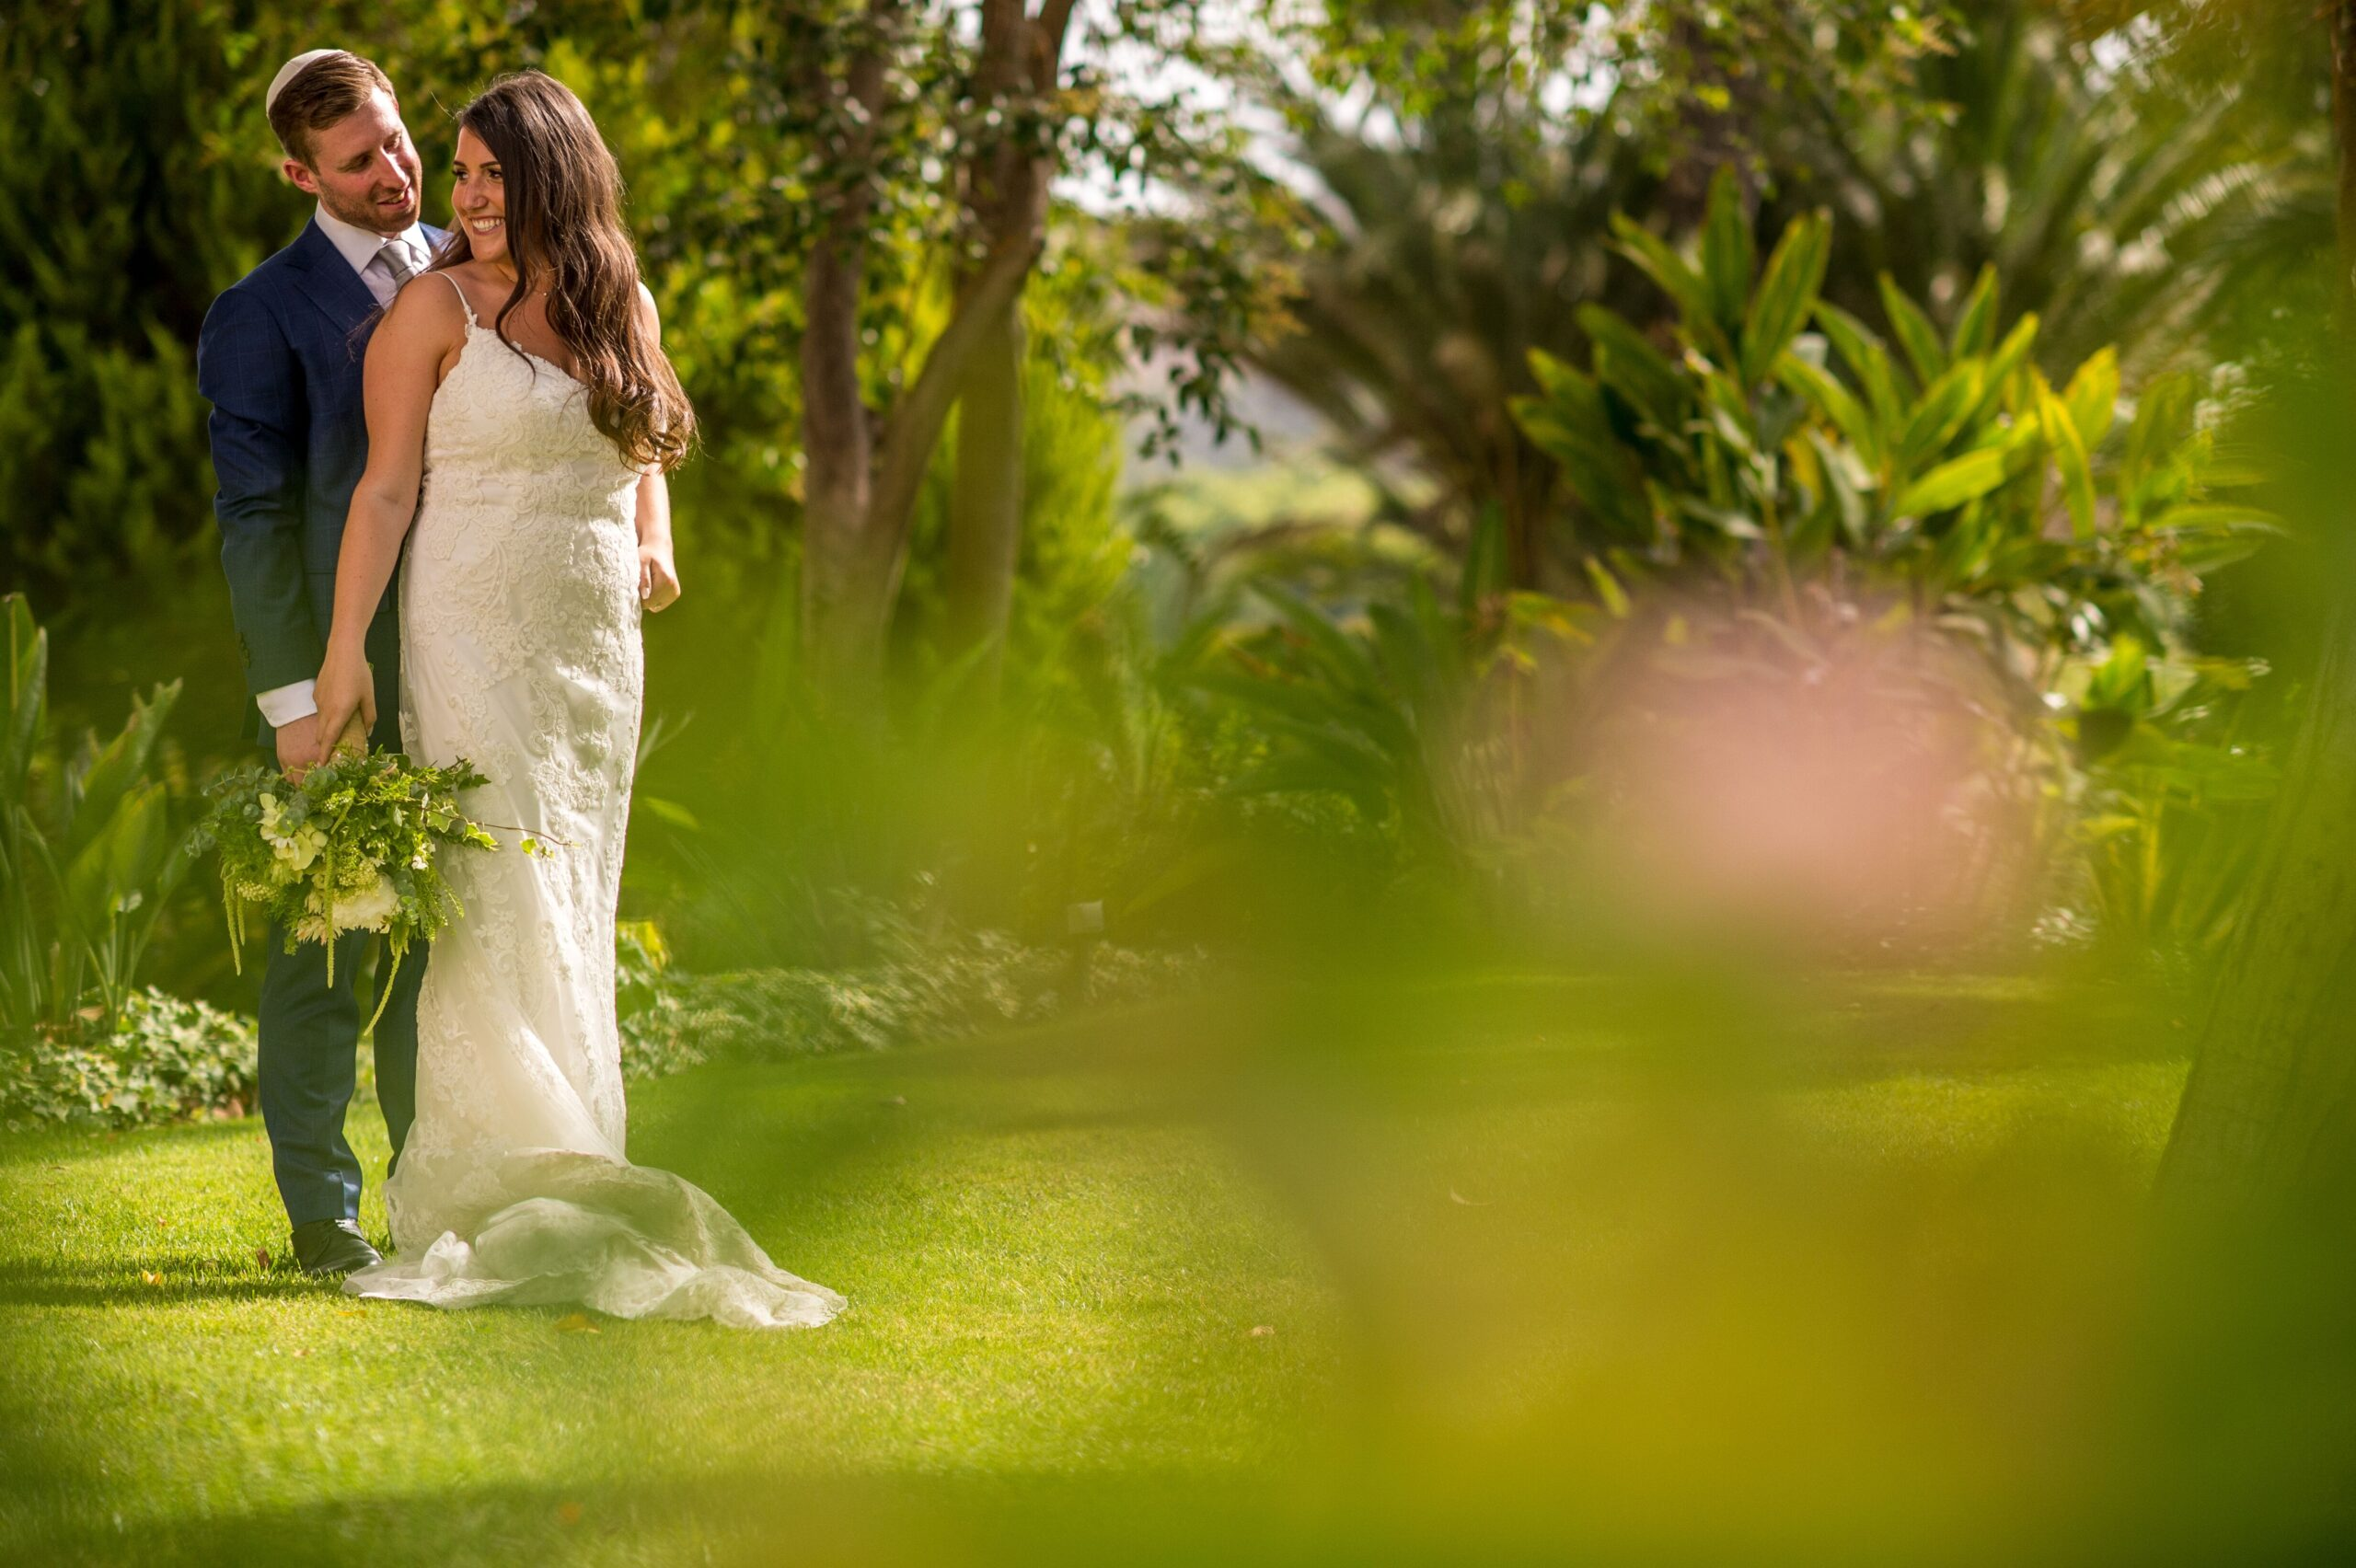 The bride and groom in the lush grounds of the Haceinda - Jeremy Standley Photographer